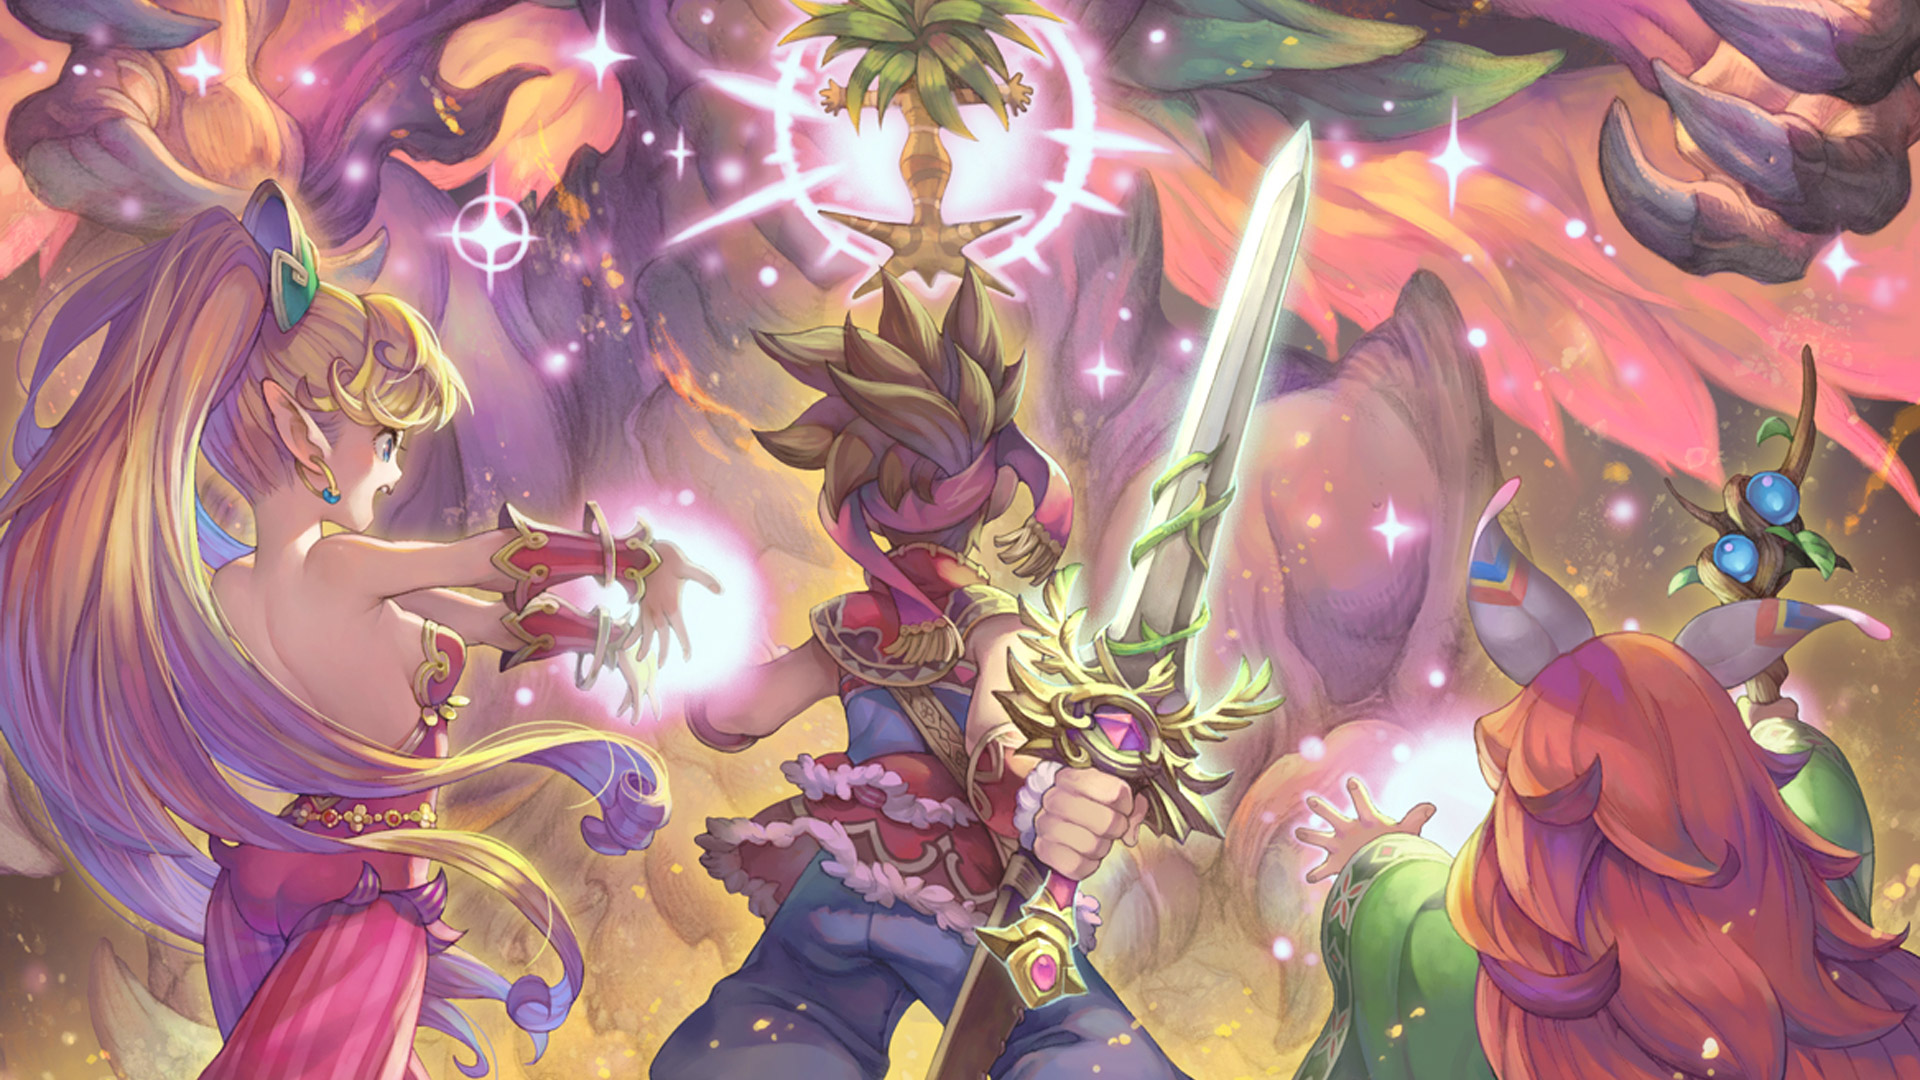 Free Secret of Mana Wallpaper in 1920x1080